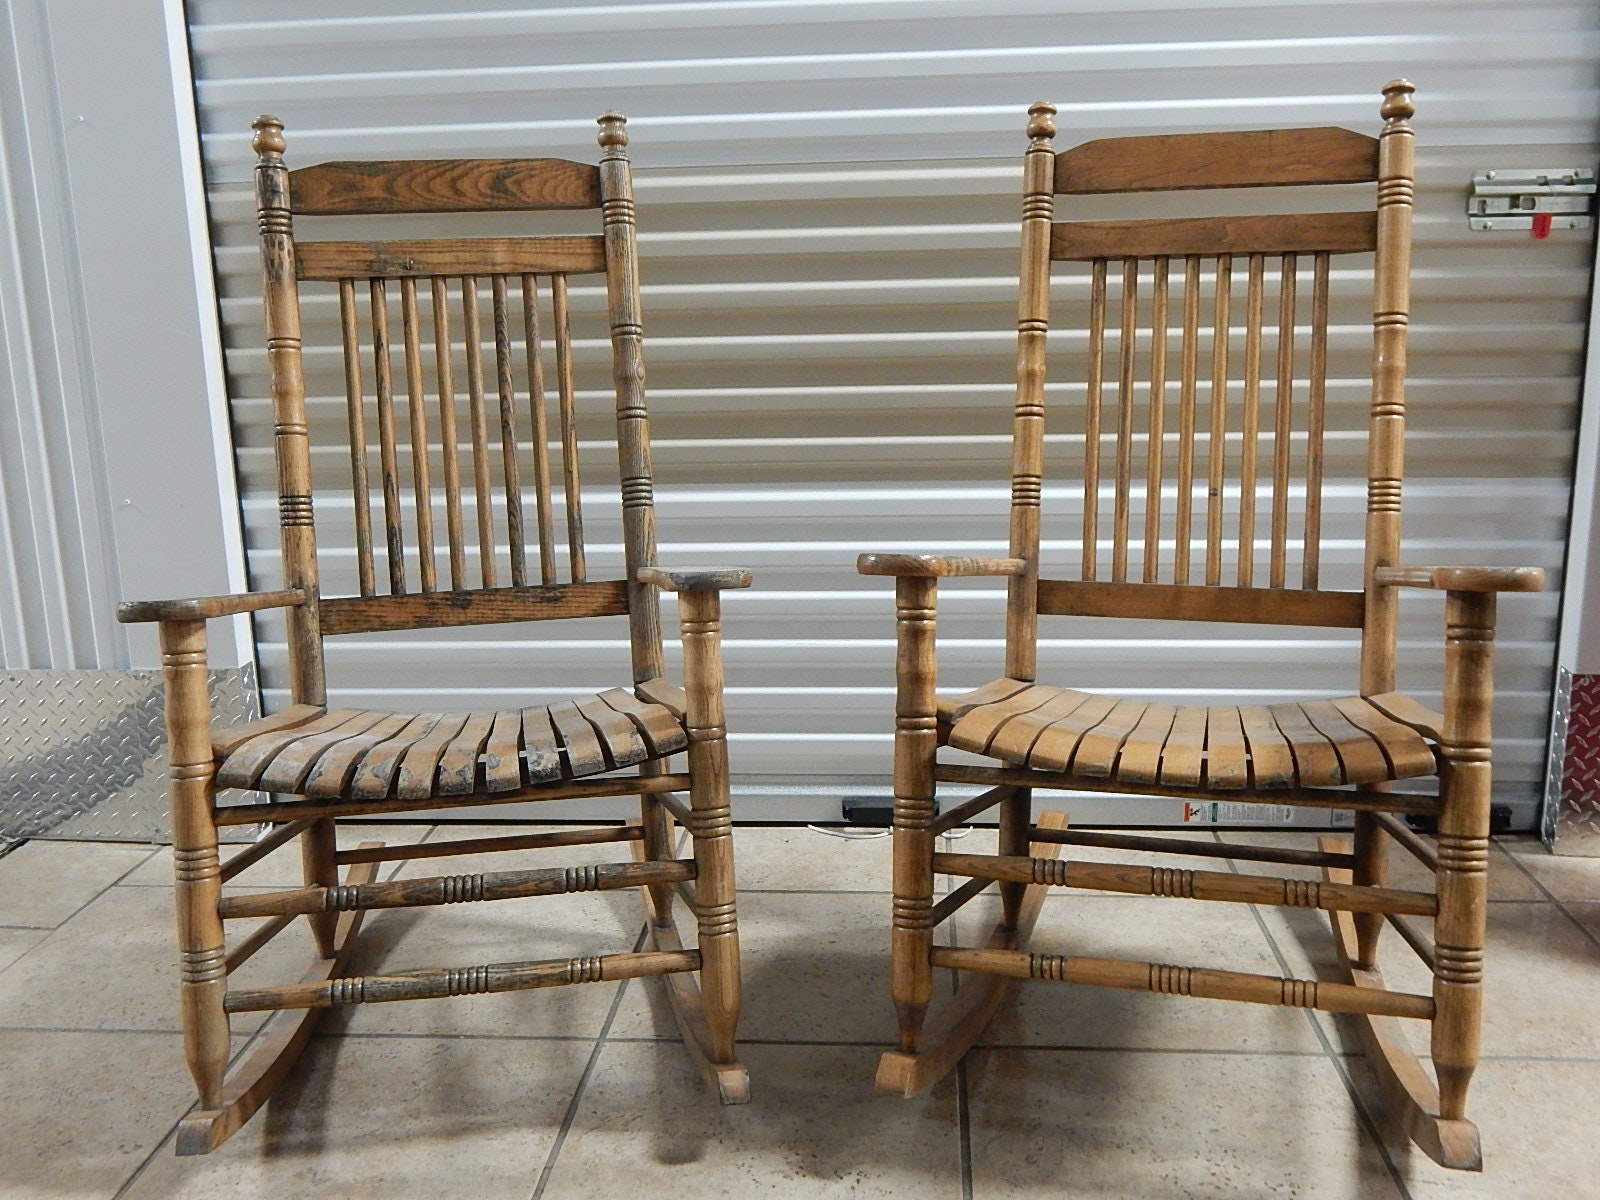 Two Vintage Cracker Barrel Rocking Chairs ... & Two Vintage Cracker Barrel Rocking Chairs : EBTH